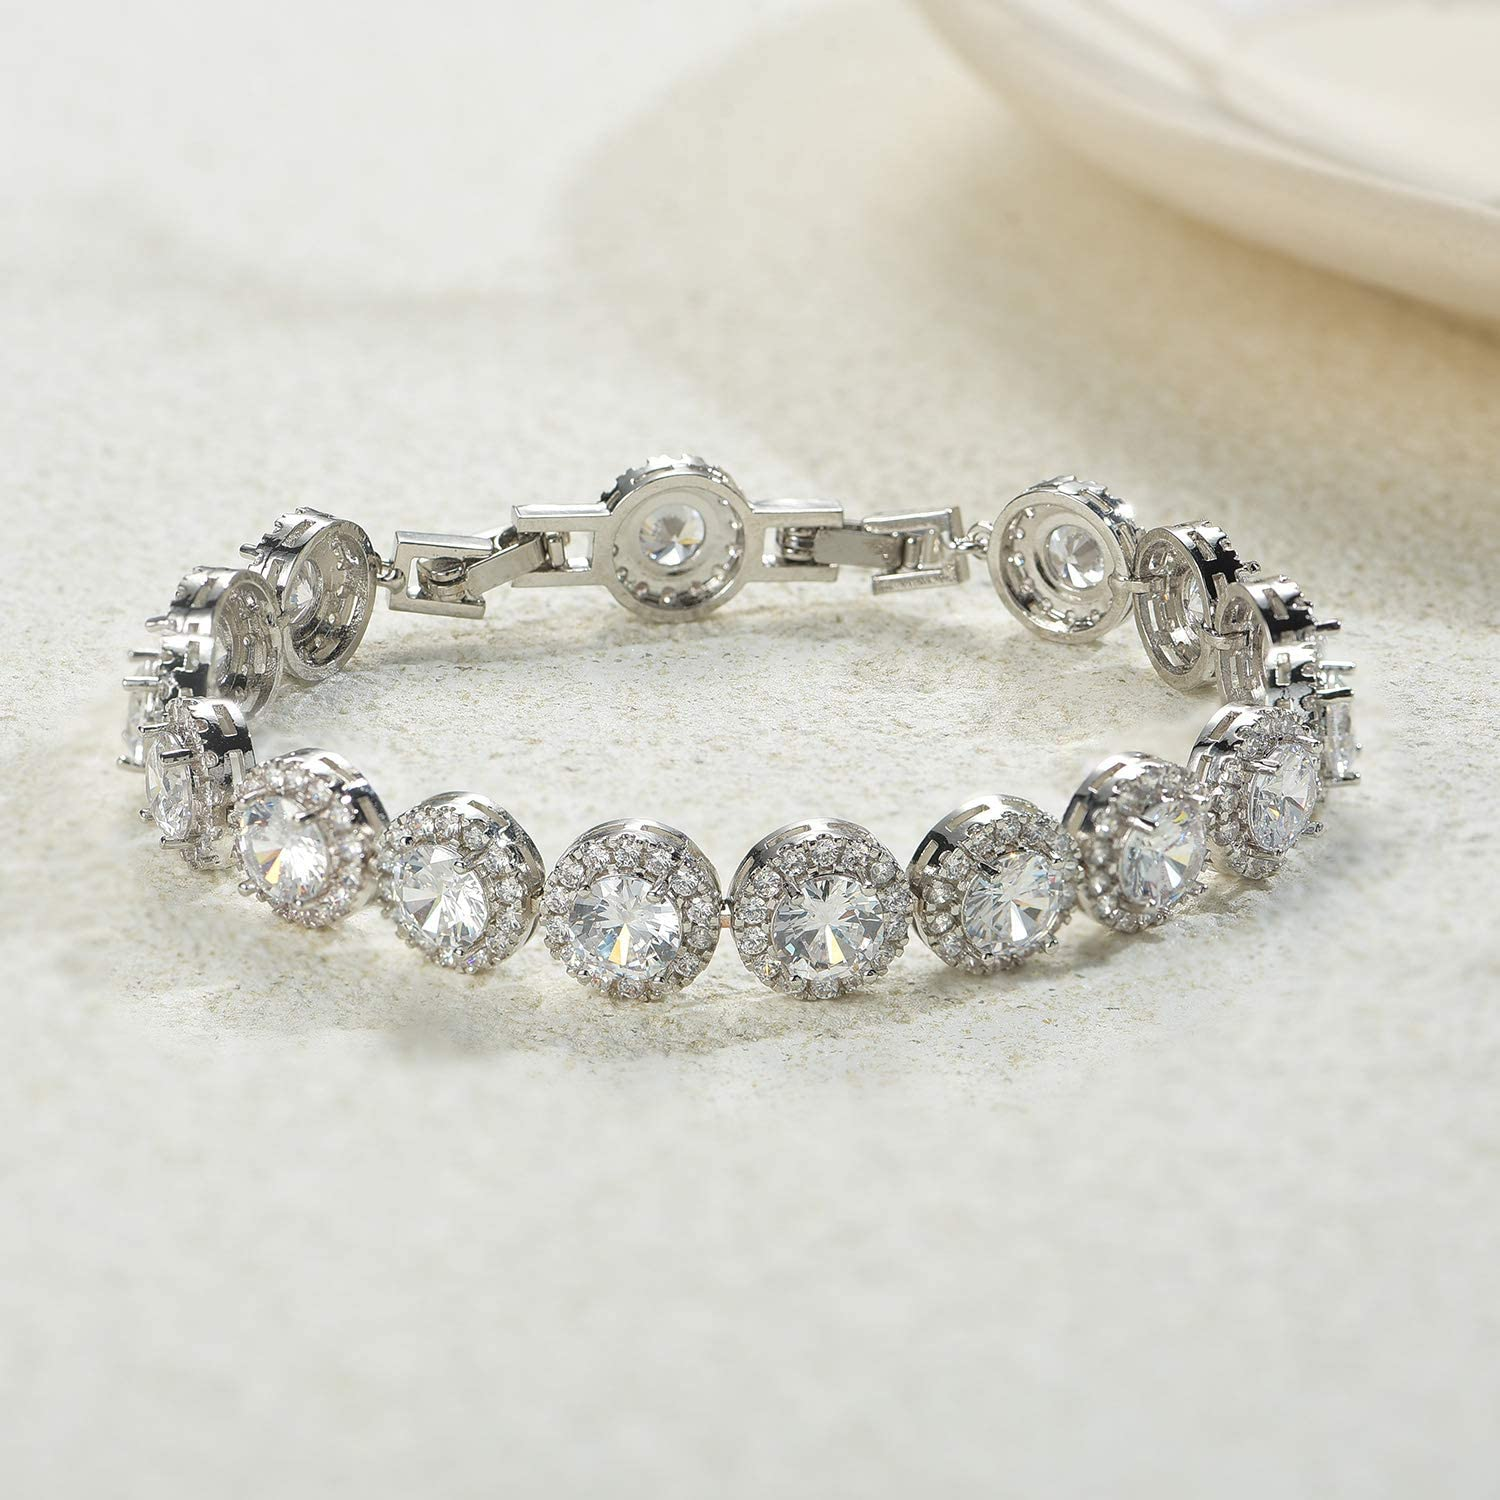 Crystal Elegant Tennis Bracelet for Women Bridal Jewelry SWEETV Round Cubic Zirconia Wedding Bracelets for Brides